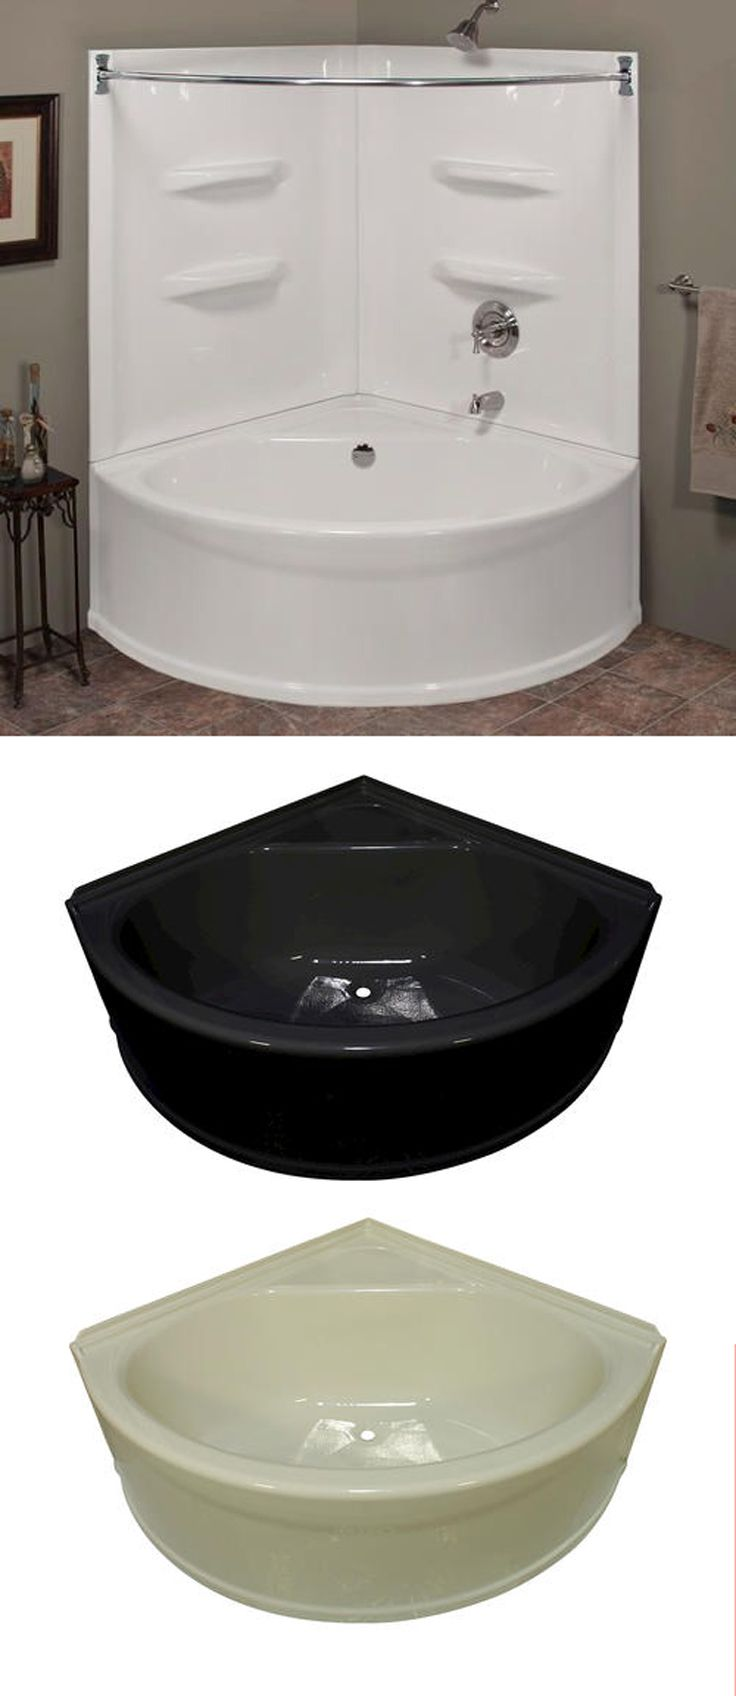 Lyons Sea Wave V Corner Soaking Bathtub. Heated. Comes in White ...